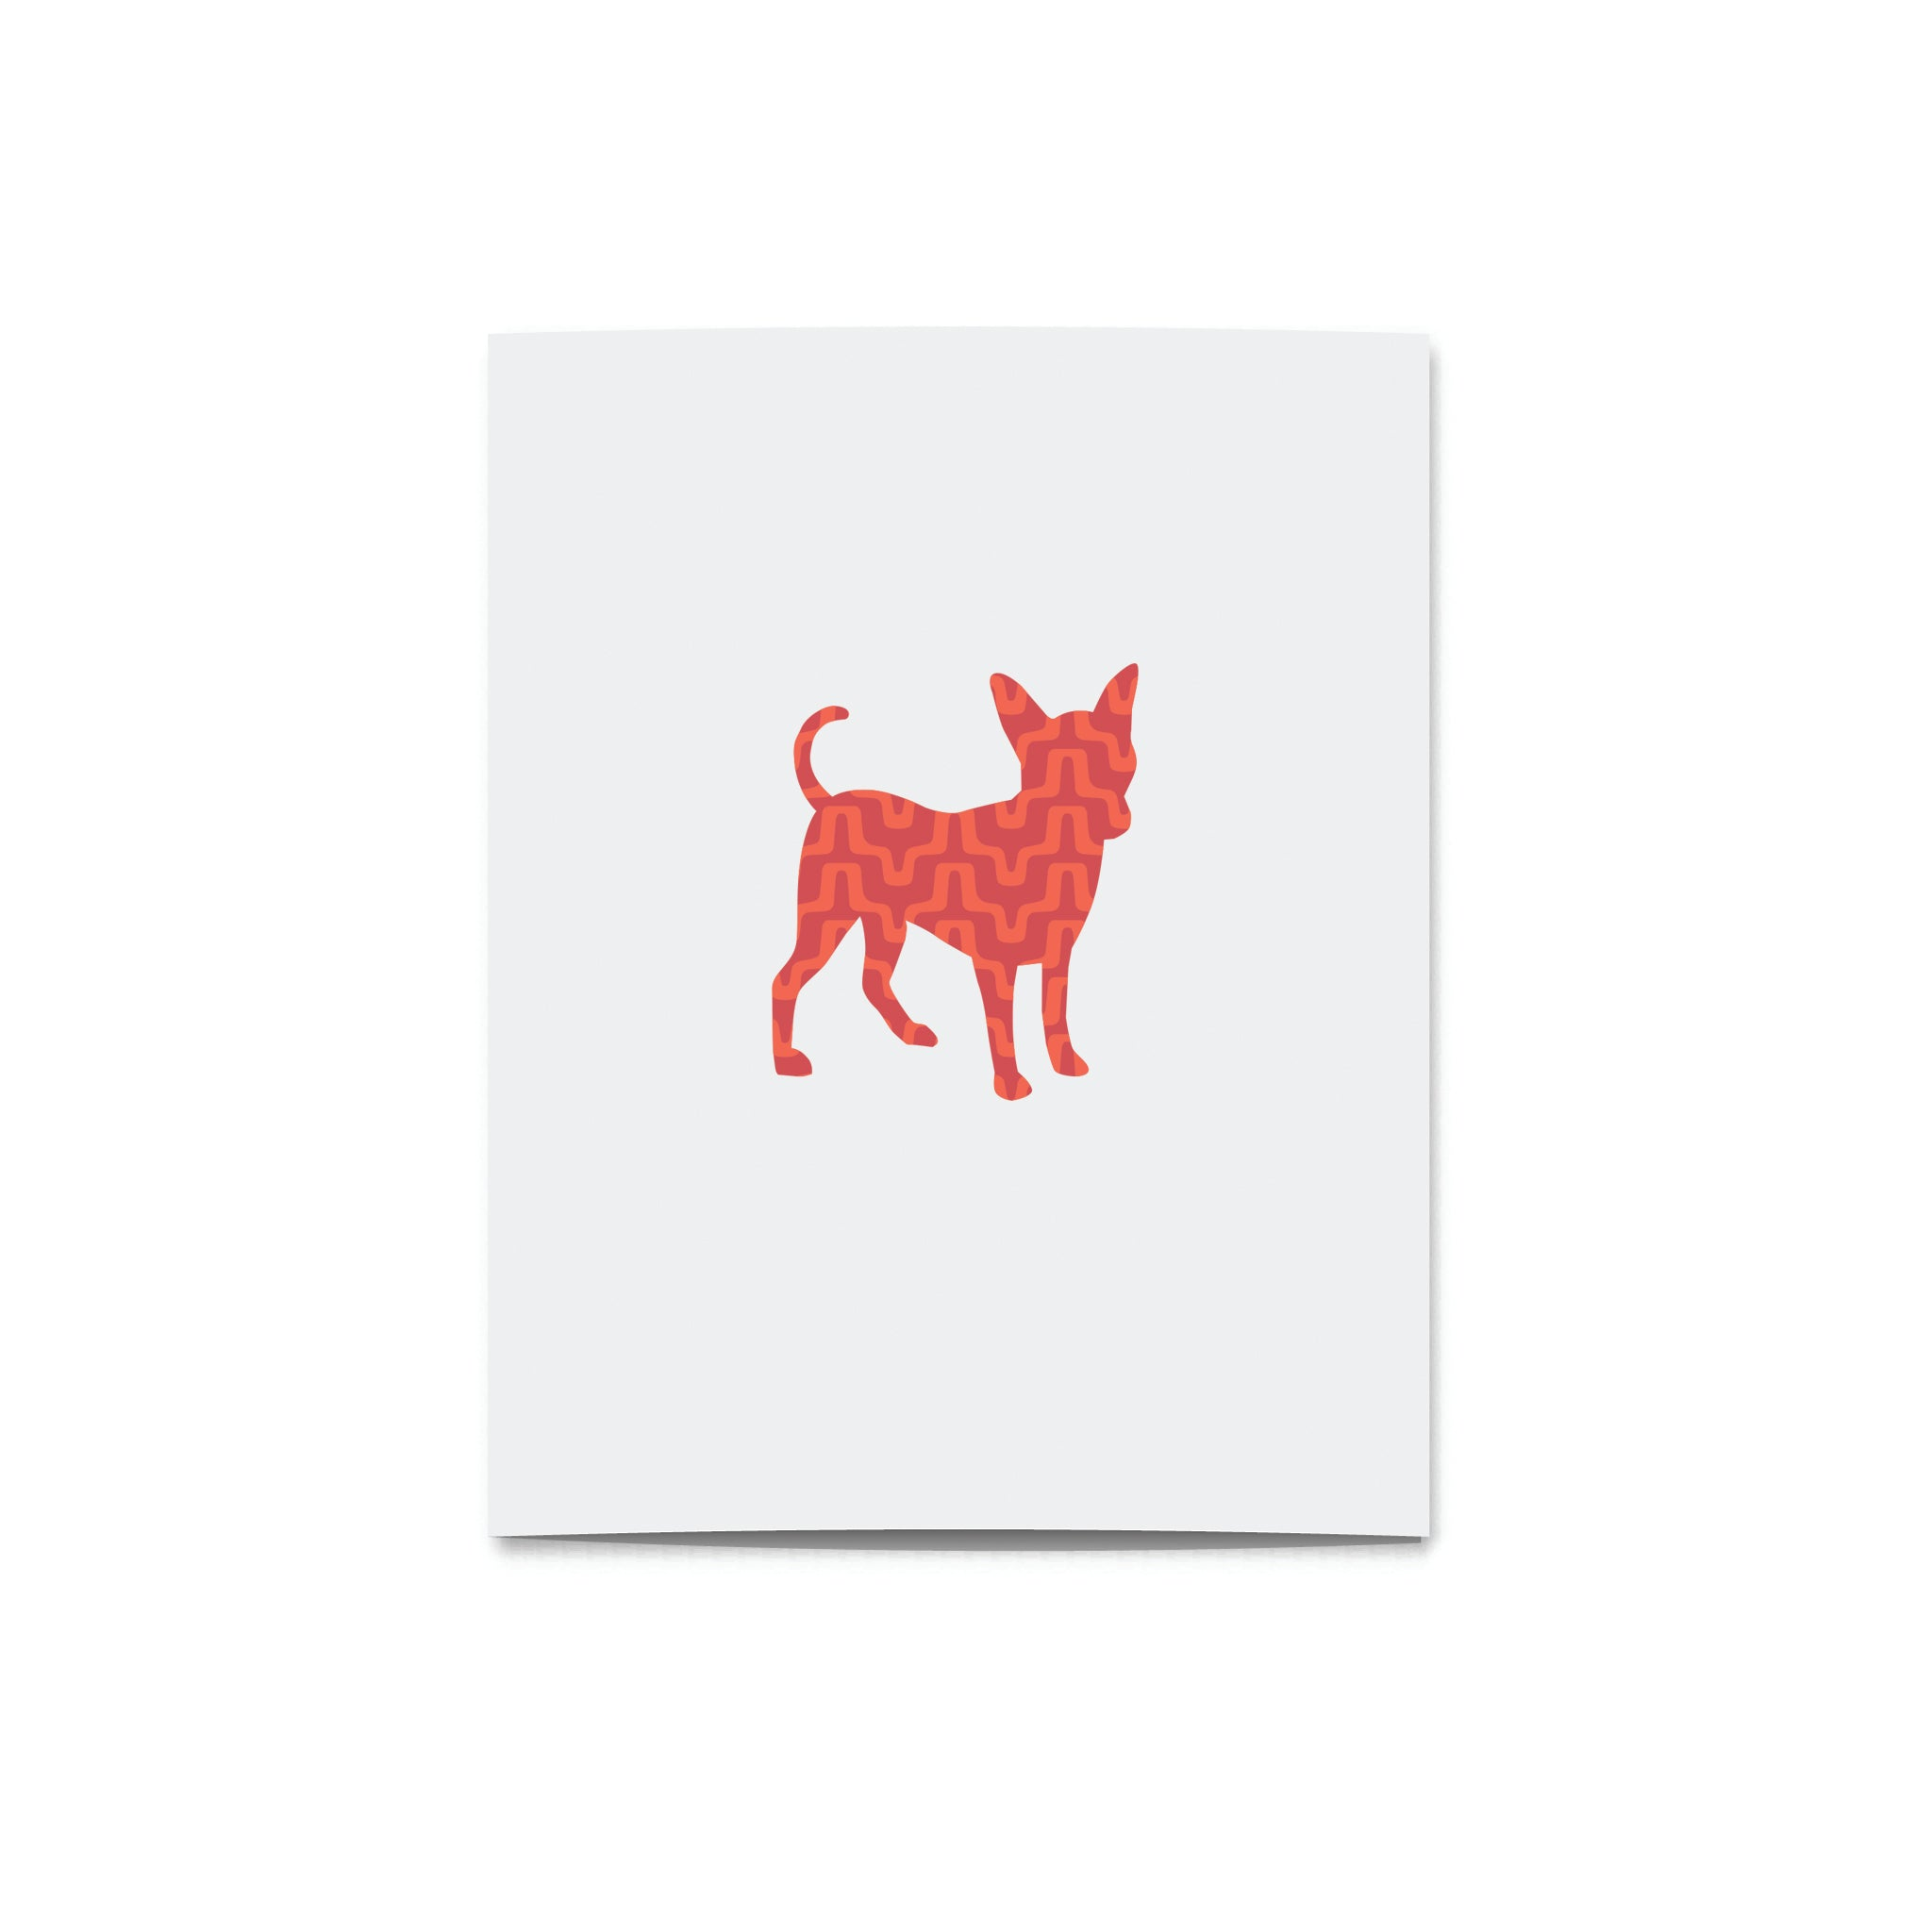 'Divine Canine' Chihuahua Card